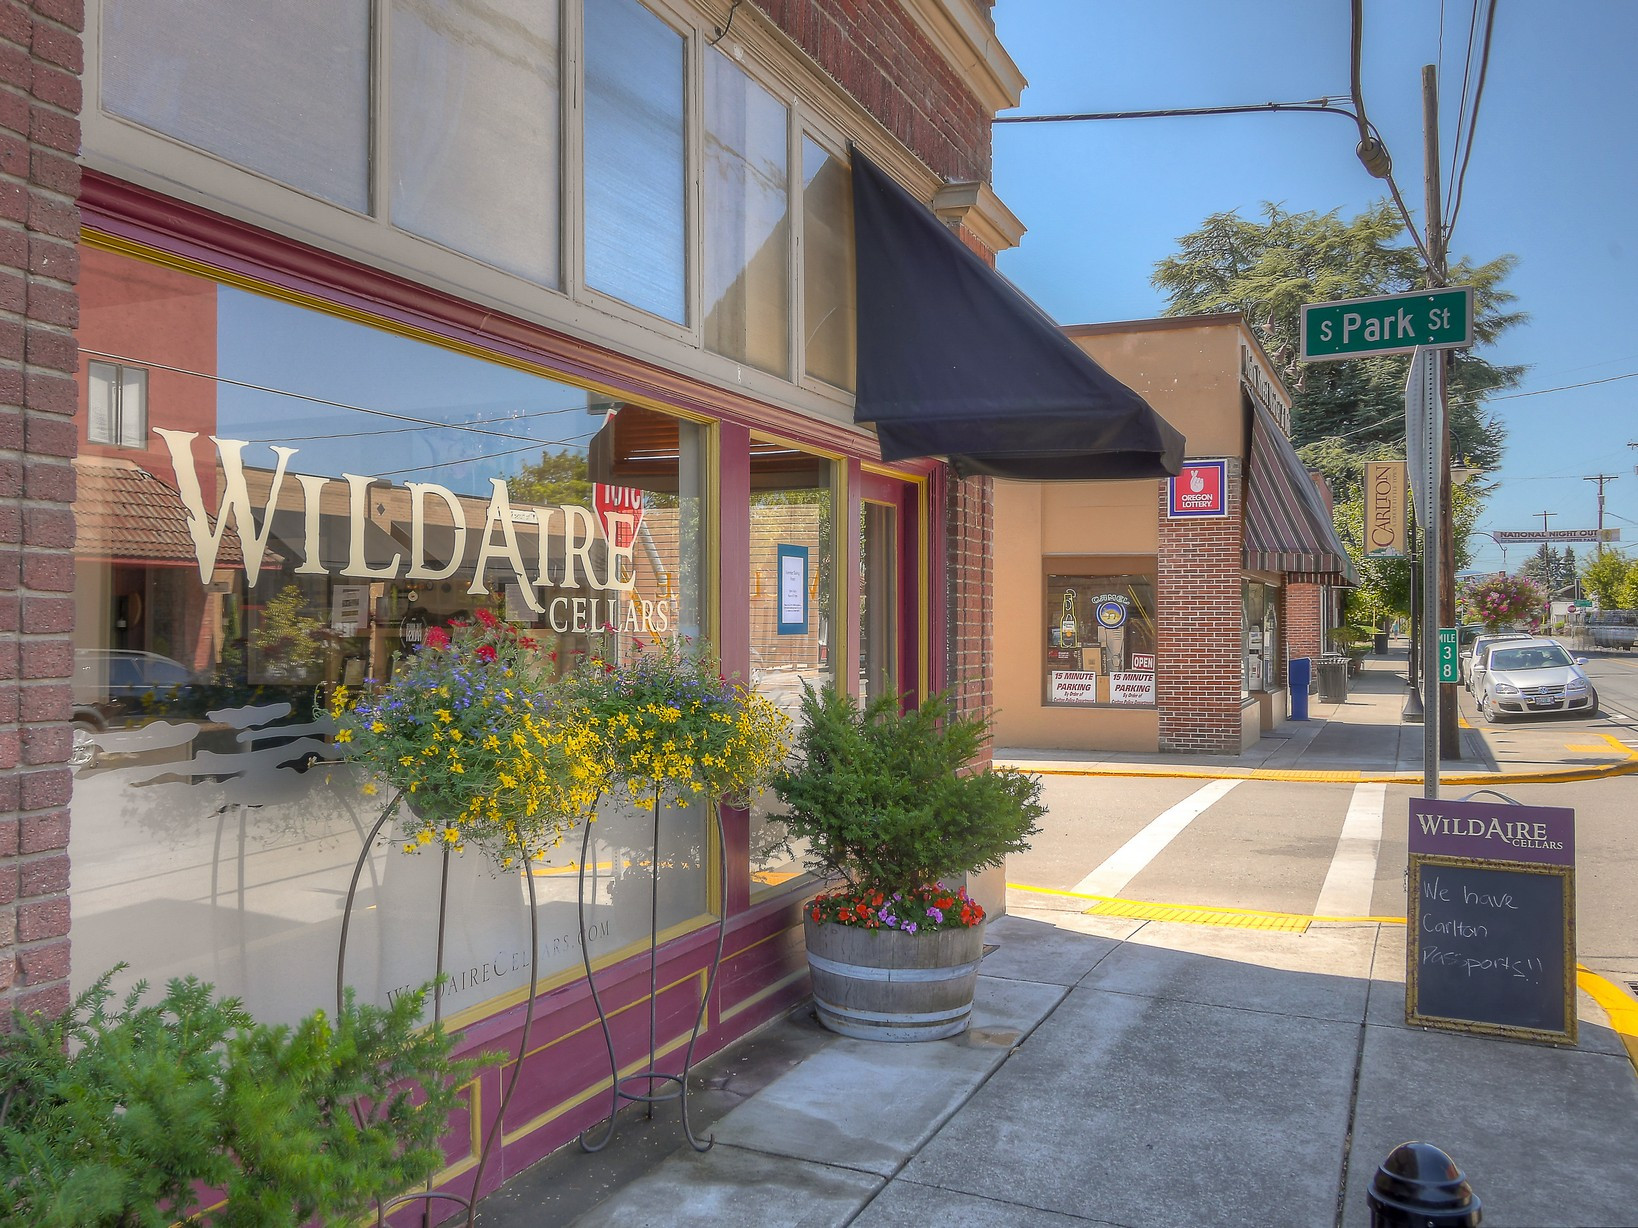 3-wildaire-cellars-carlton-oregon-the-kelly-group-real-estate